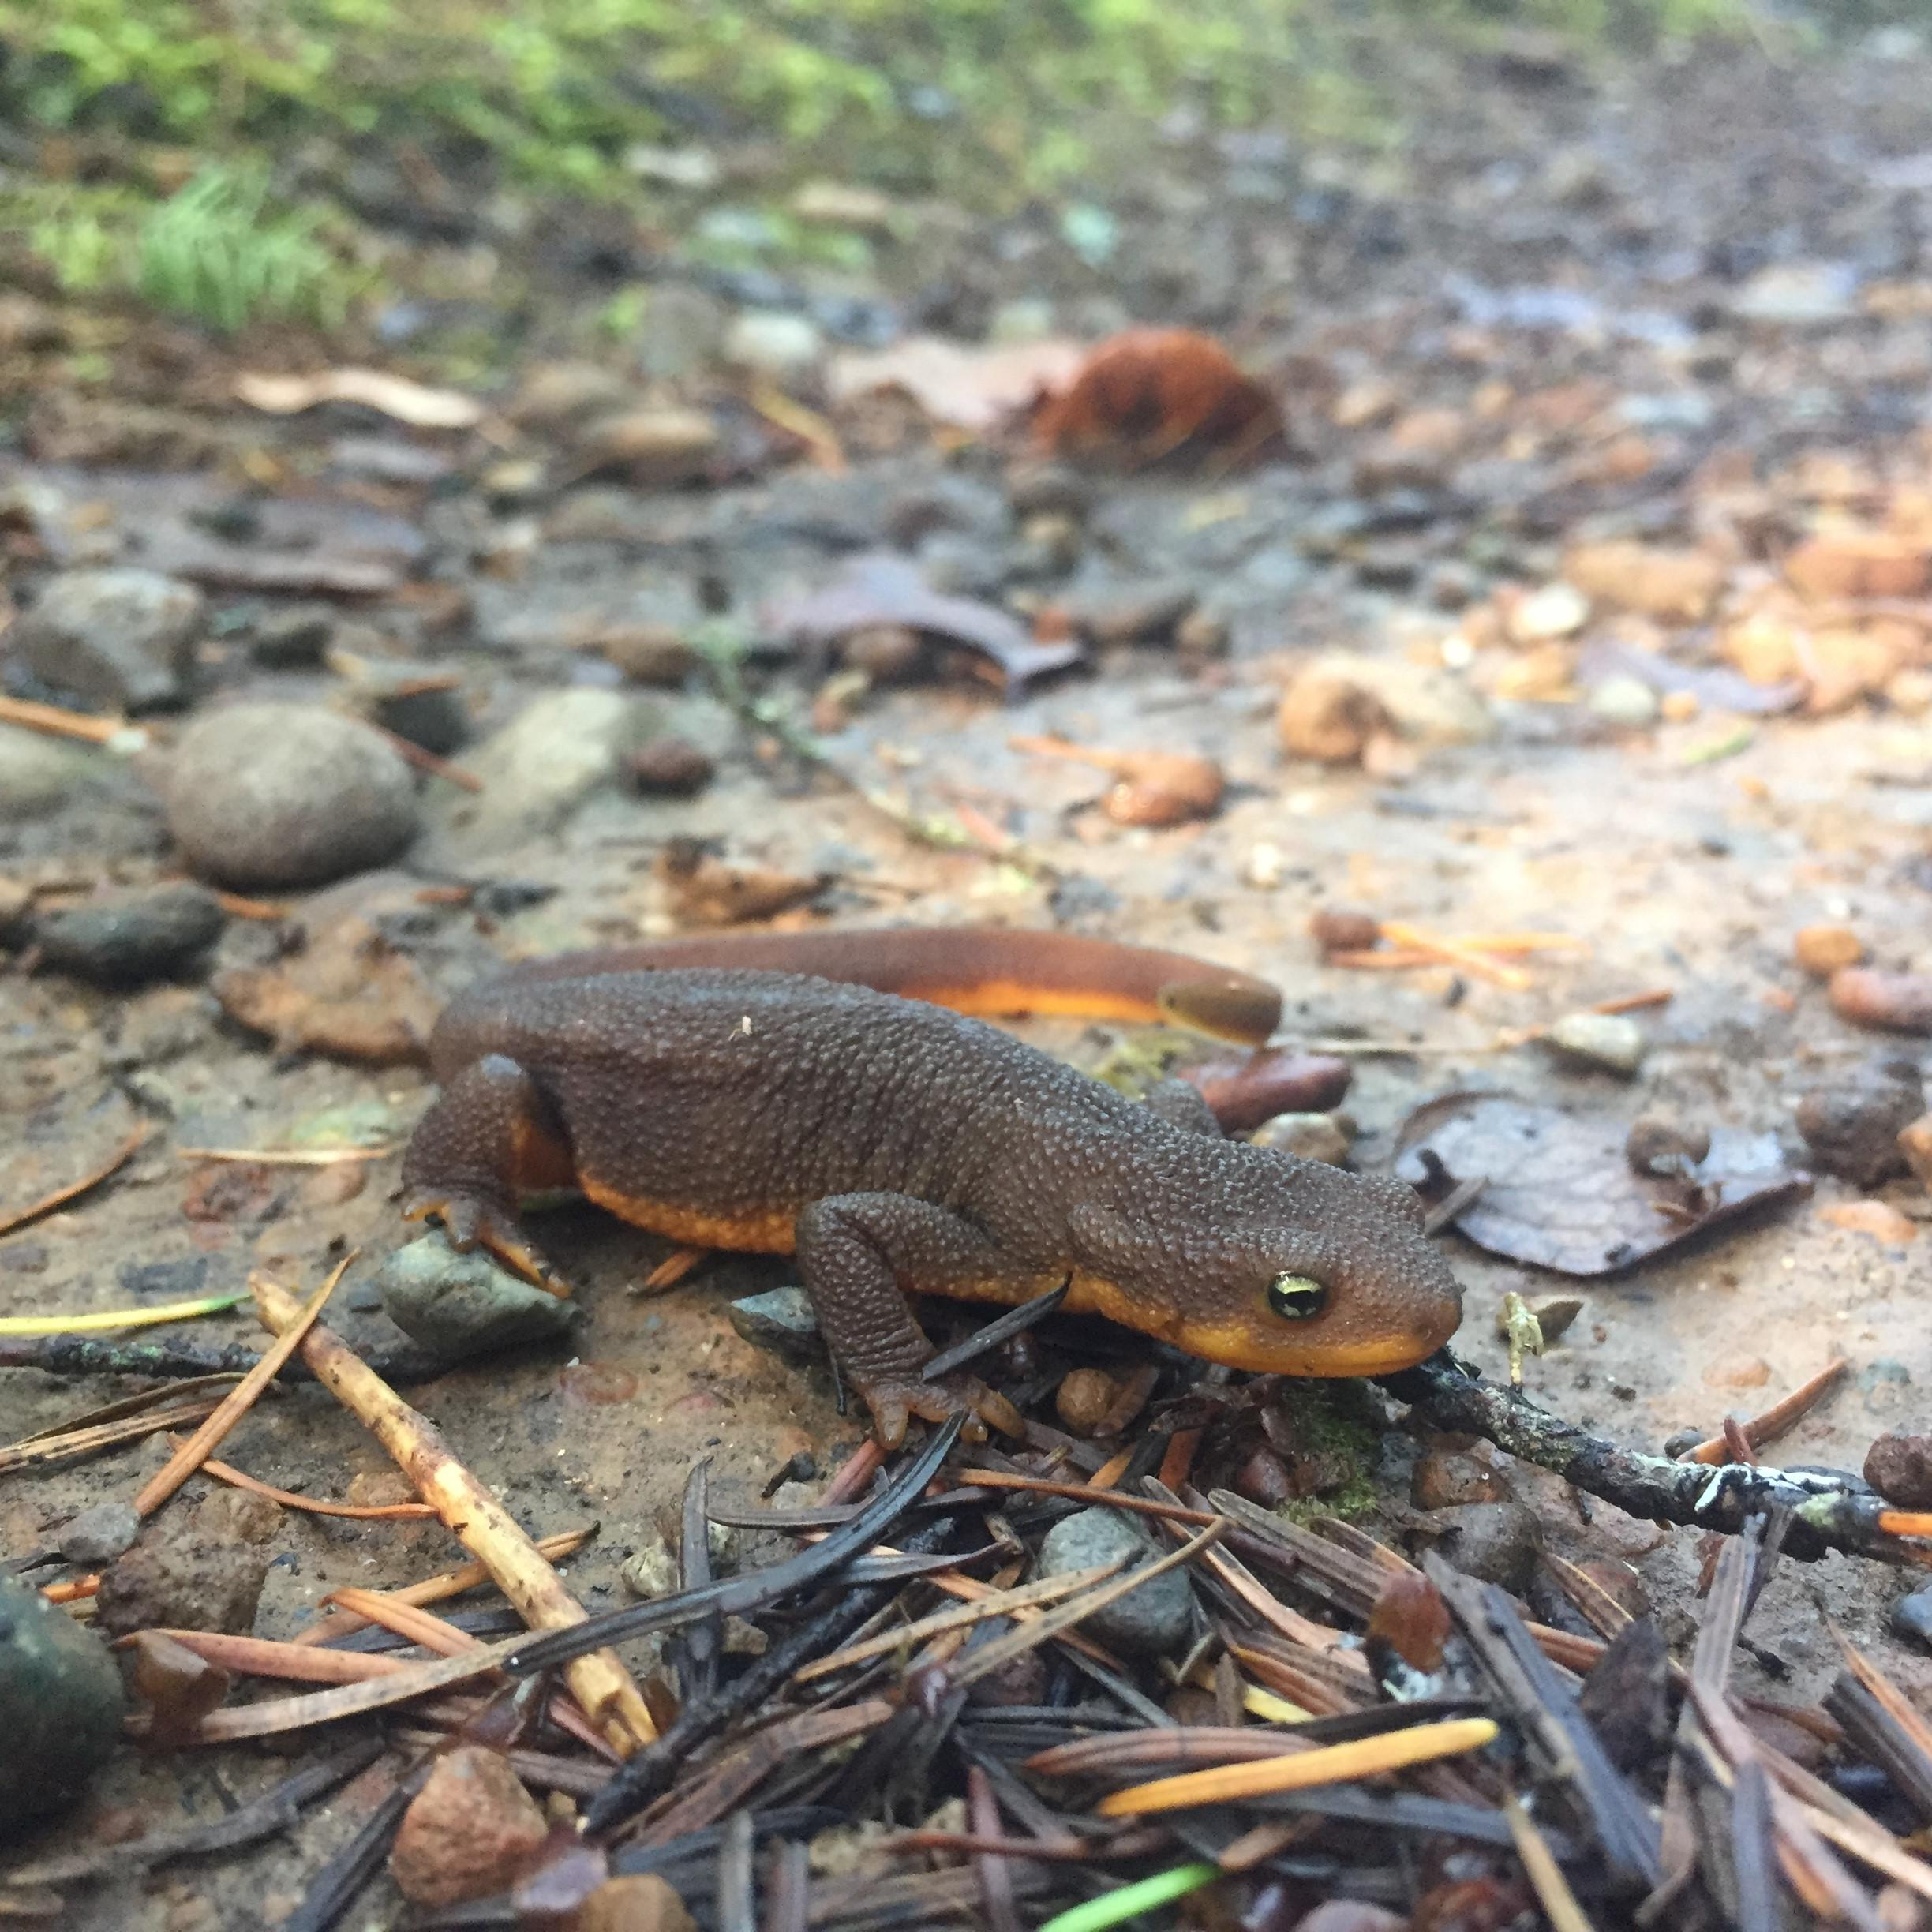 Image of rough-skinned newt at nature adventures at Alderbrook